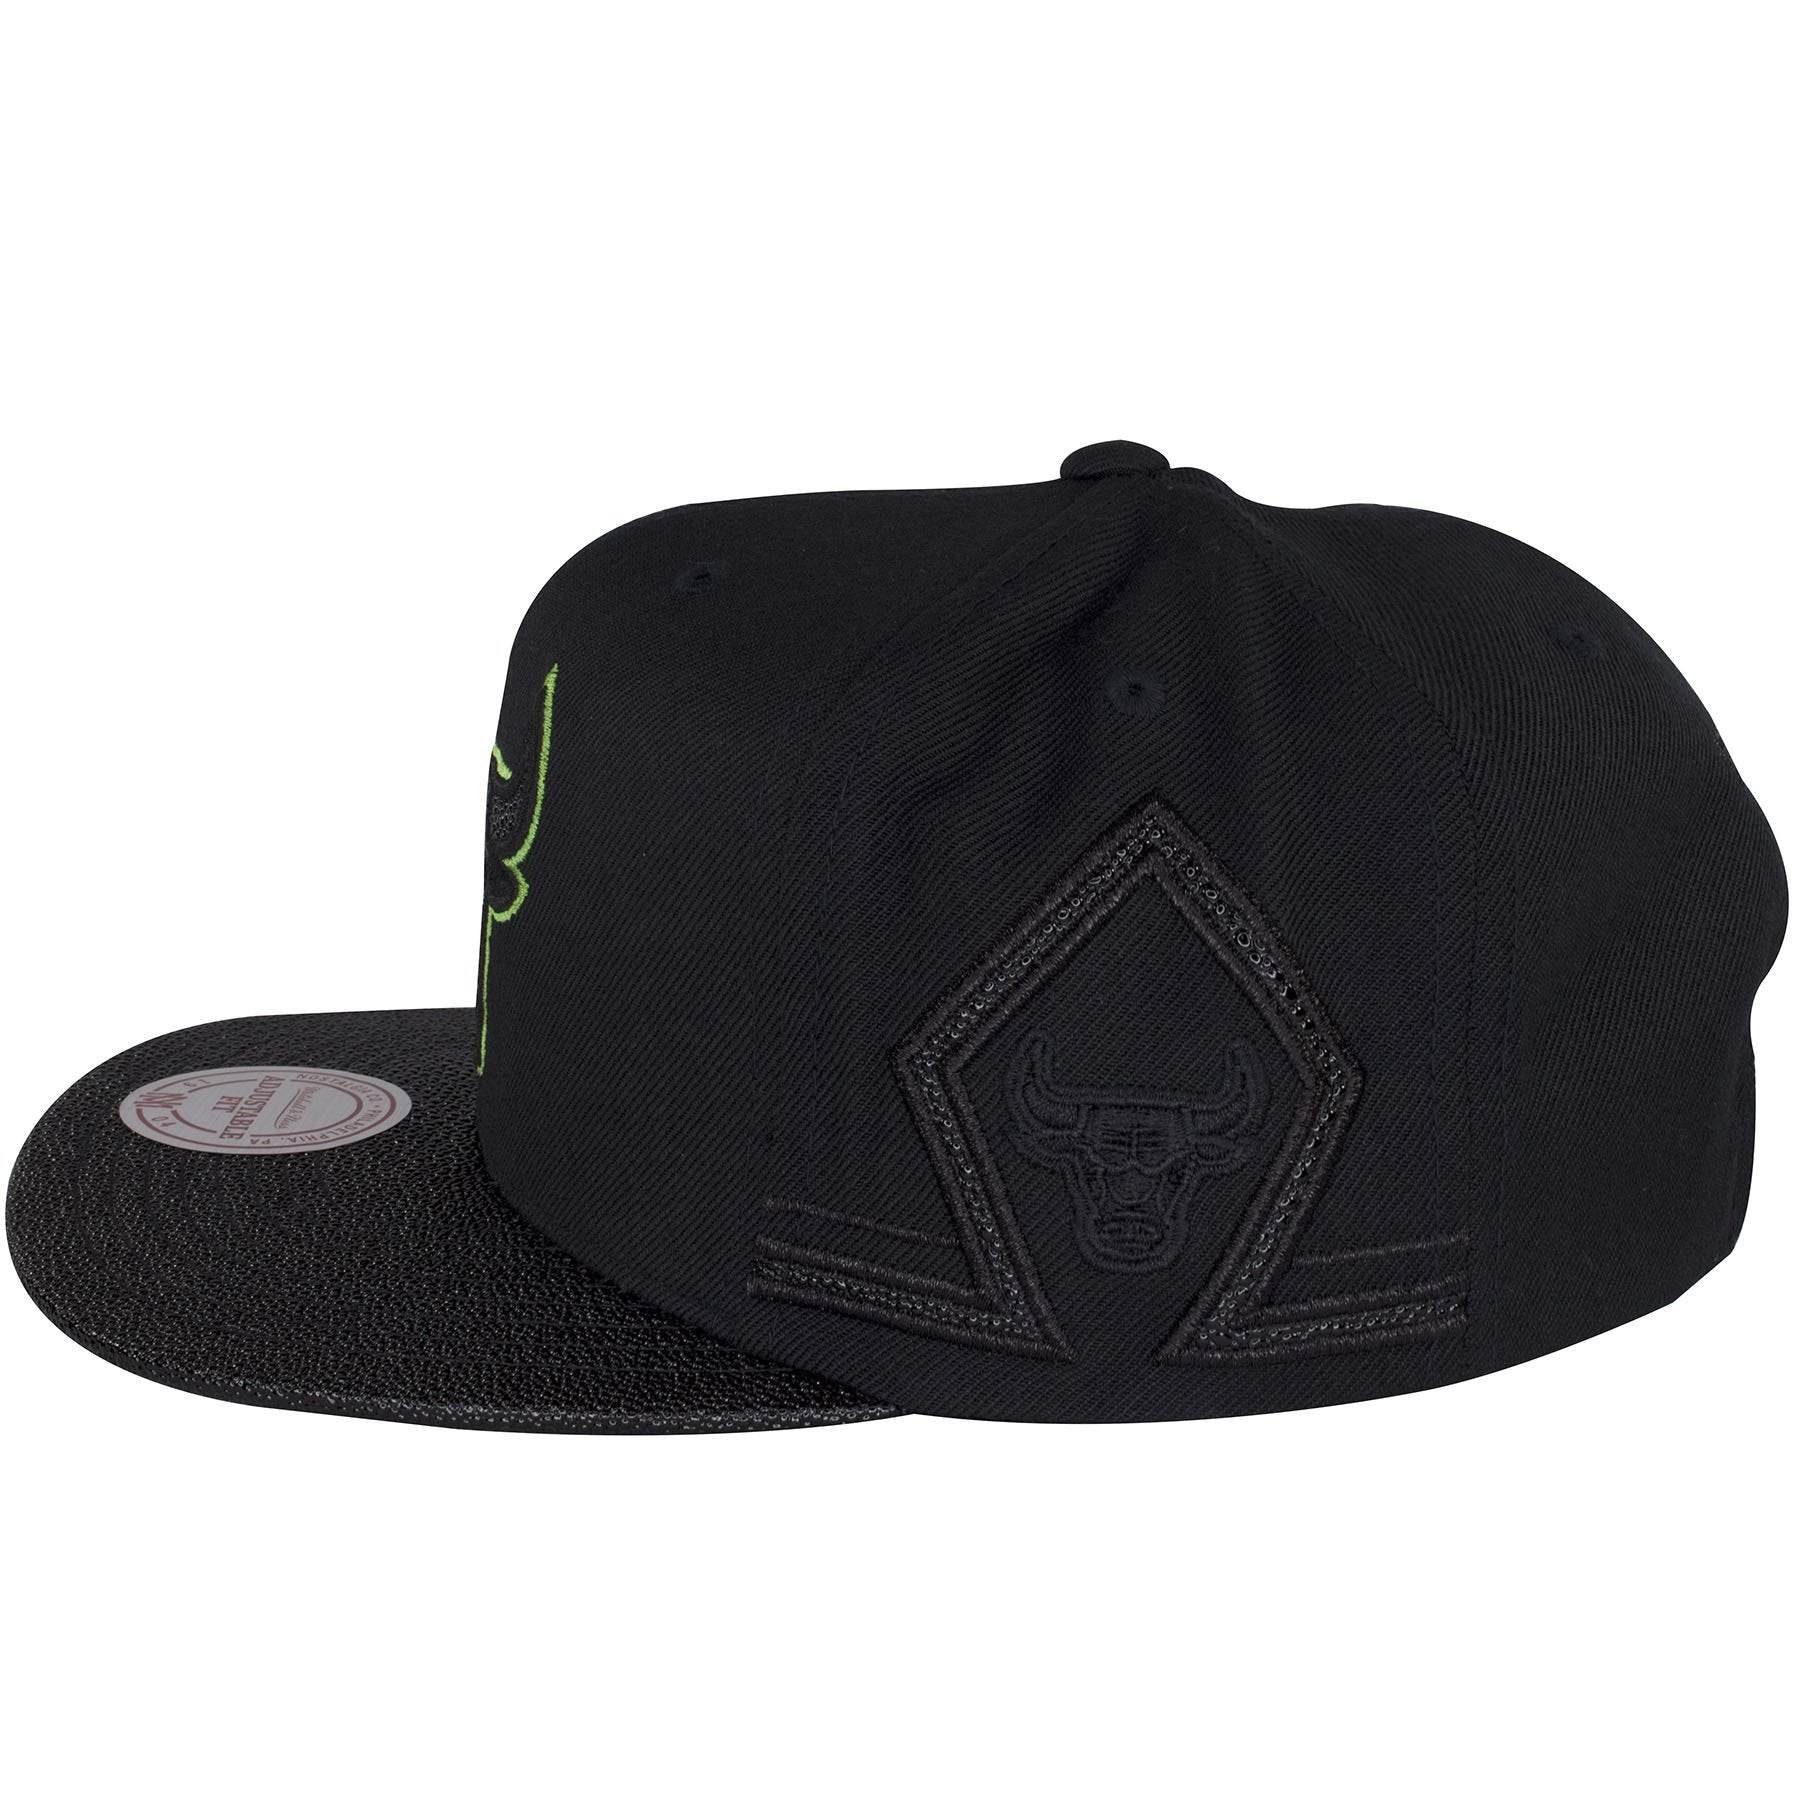 fc8037642cd679 The sides of this Altitude Chicago Bulls black snapback hat shows a diamond  shape similar to  The back of this Chicago Bulls Black And Green Jordan 13  ...